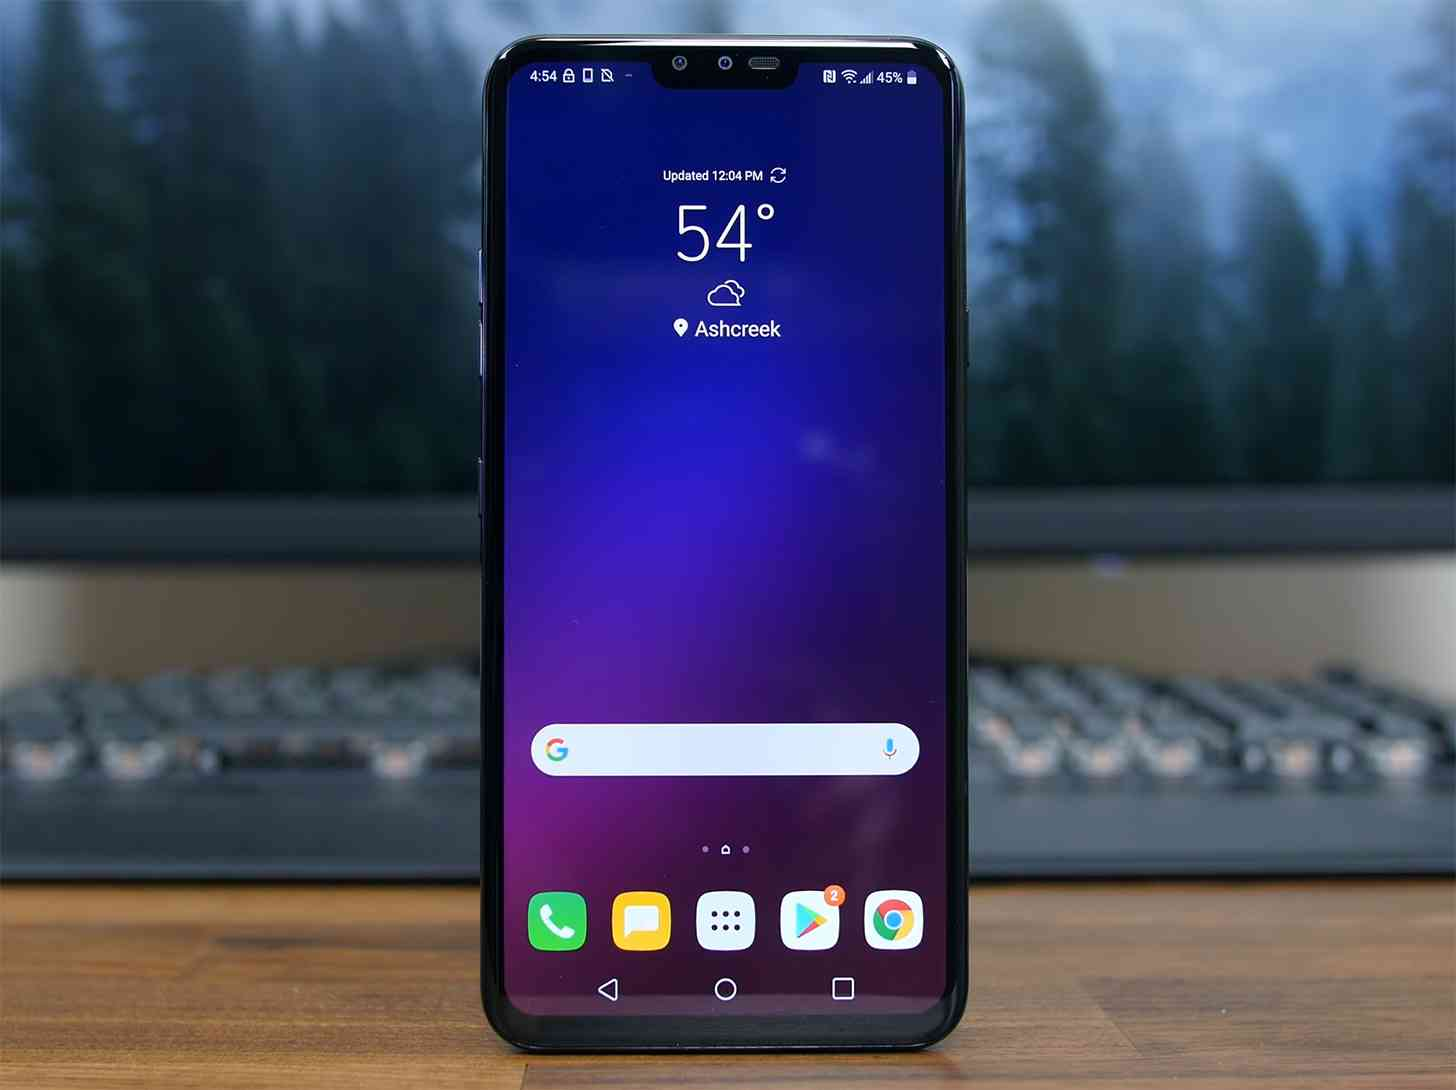 The new LG V40 ThinQ comes with 5 cameras in February in South Africa